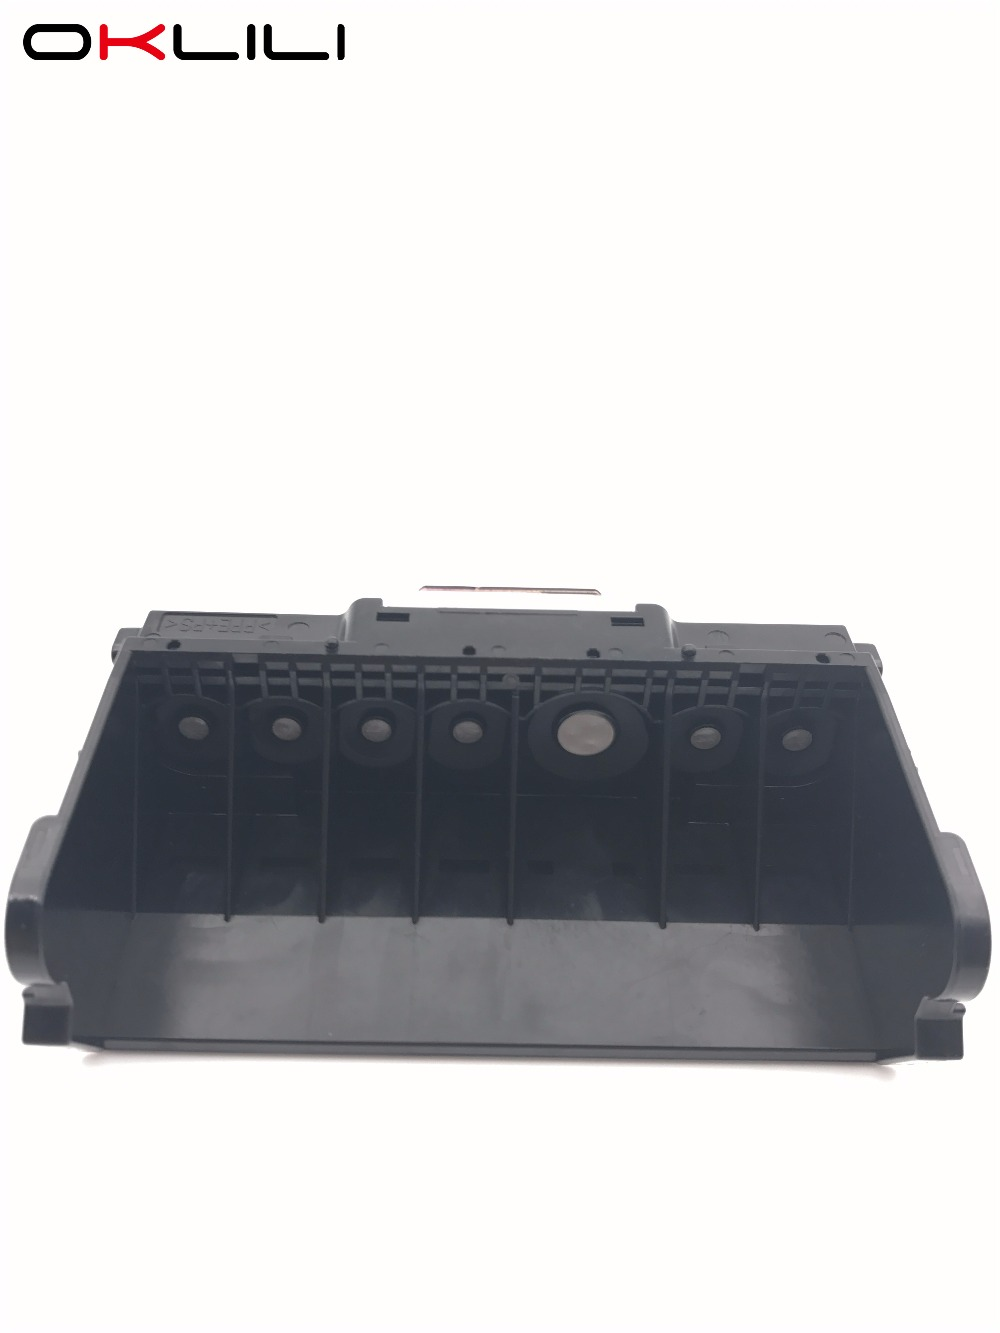 OKLILI ORIGINAL QY6-0062 QY6-0062-000 Printhead Print Head Printer Head for Canon iP7500 iP7600 MP950 MP960 MP970 original qy6 0075 qy6 0075 000 printhead print head printer head for canon ip5300 mp810 ip4500 mp610 mx850